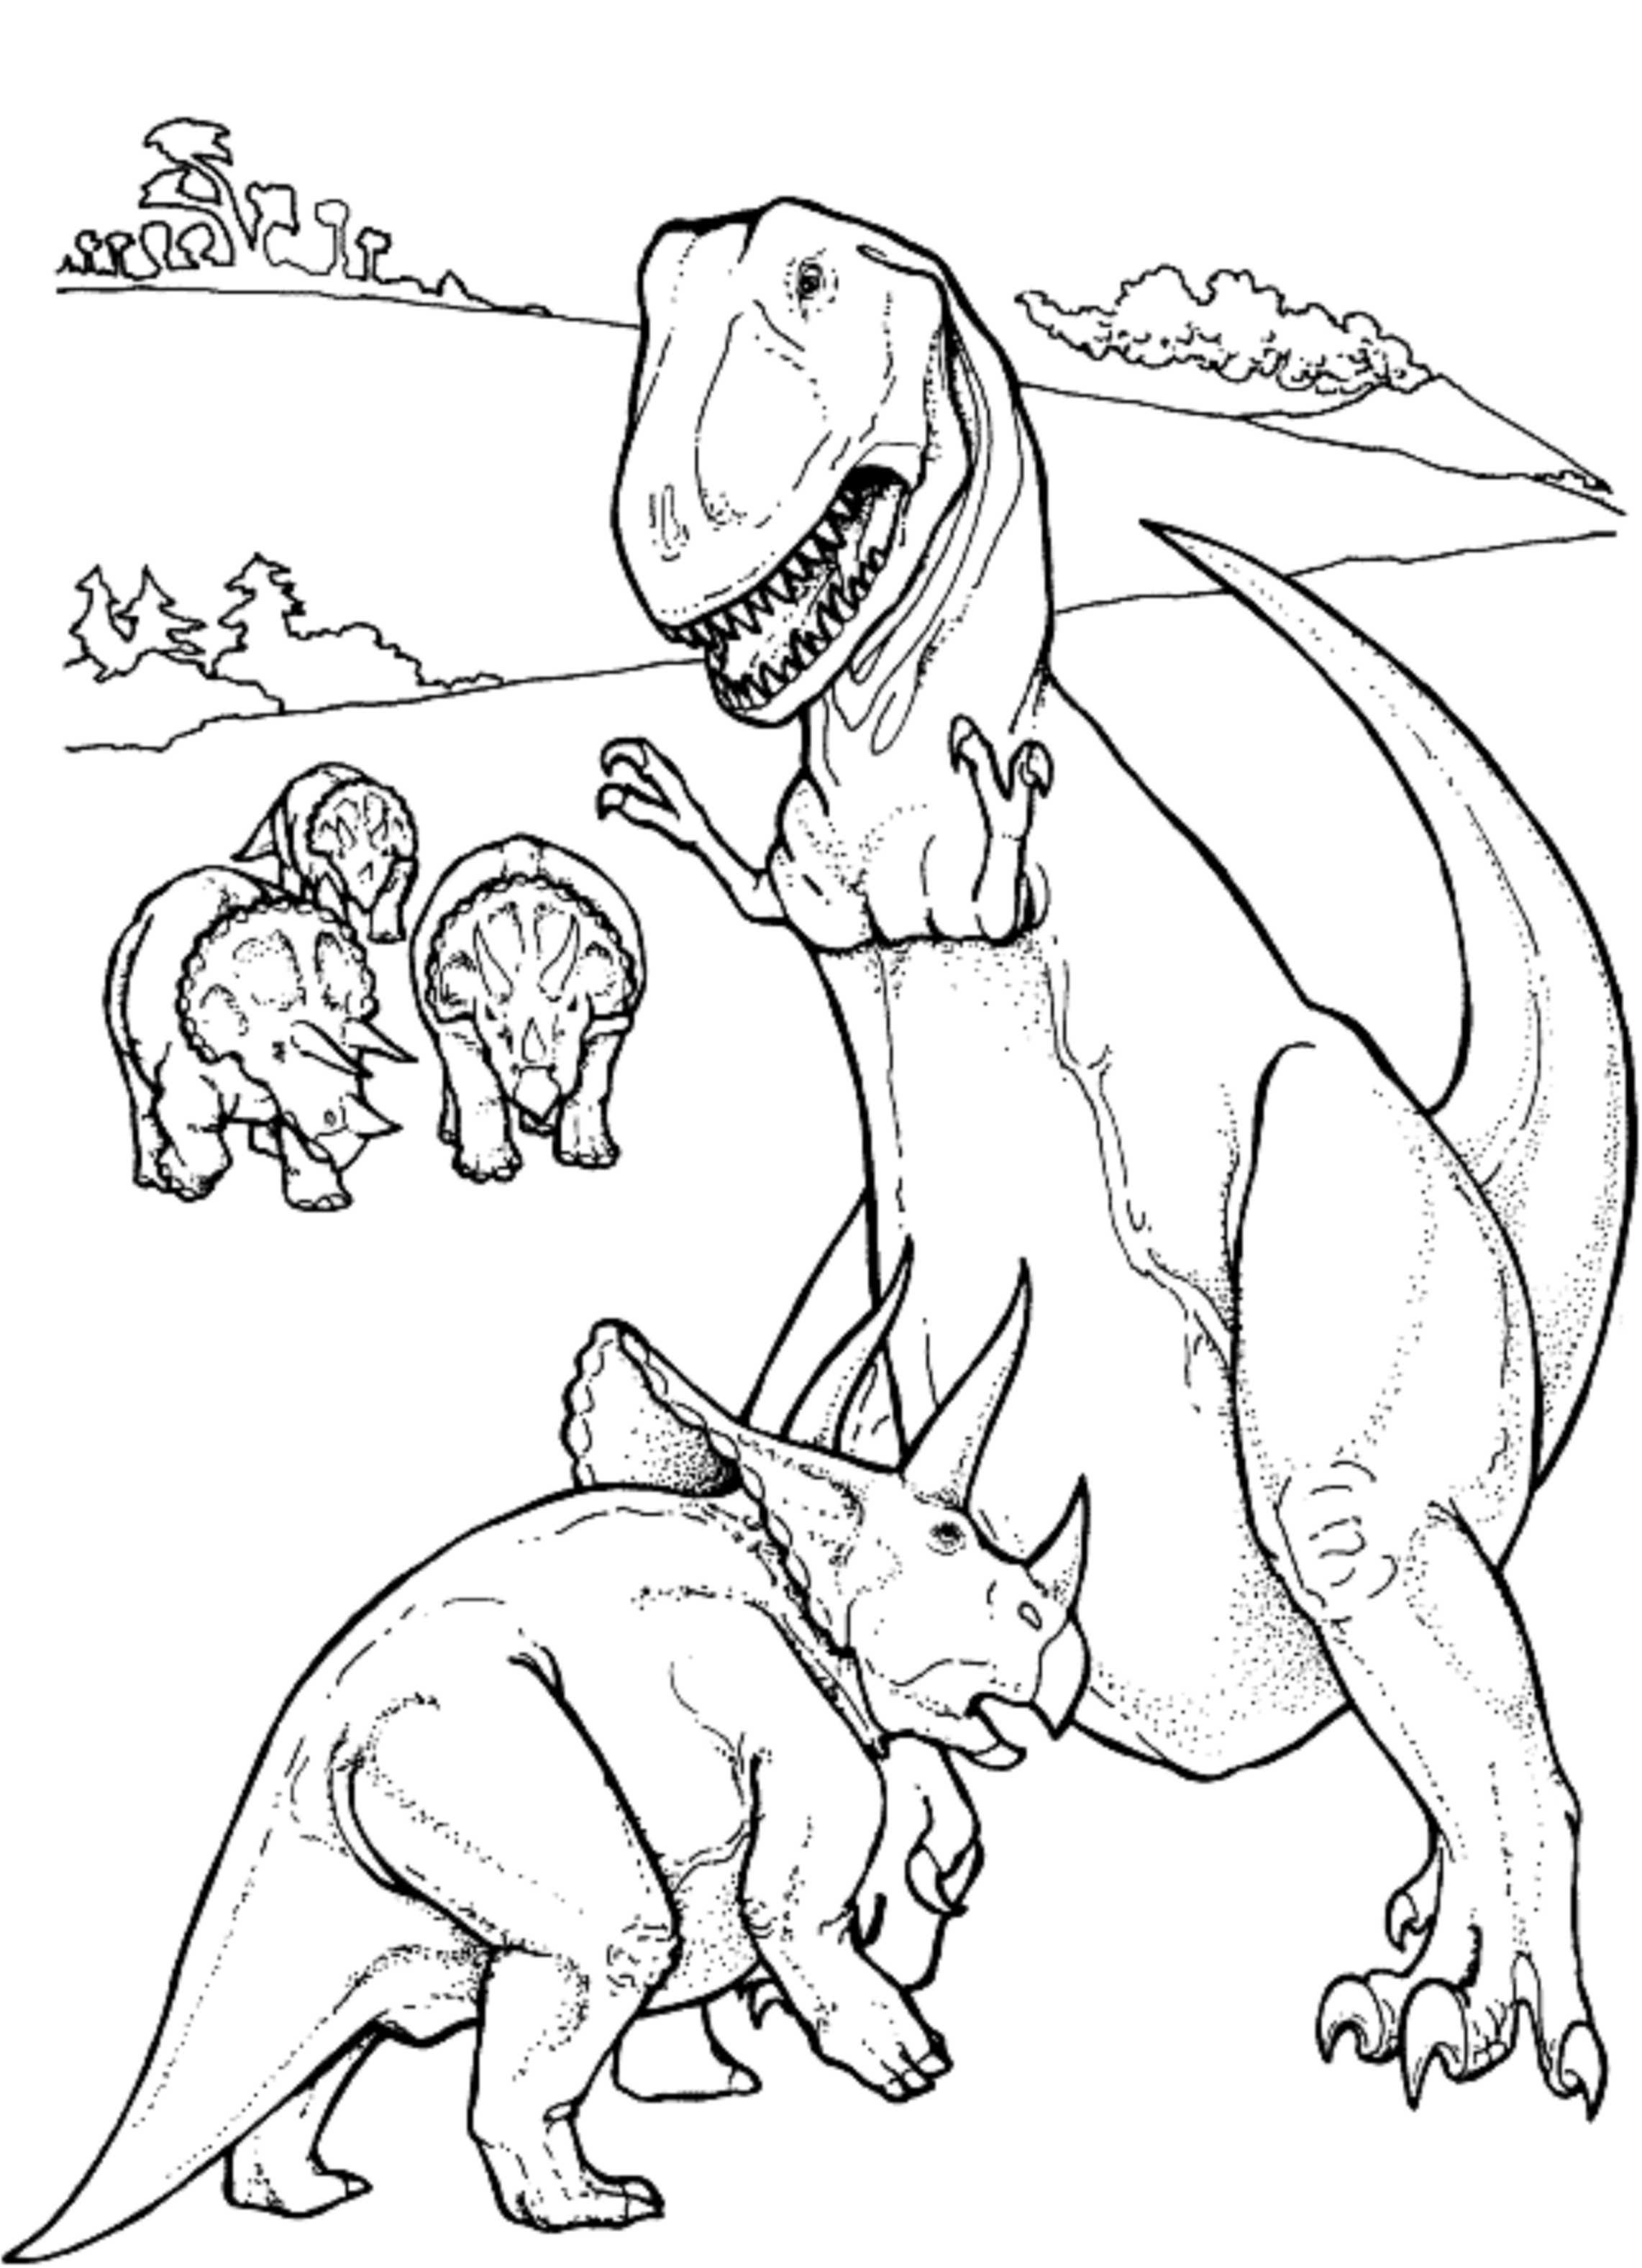 Triceratop vs T Rex Dinosaur Coloring Pages | Kids Colouring Pages ...